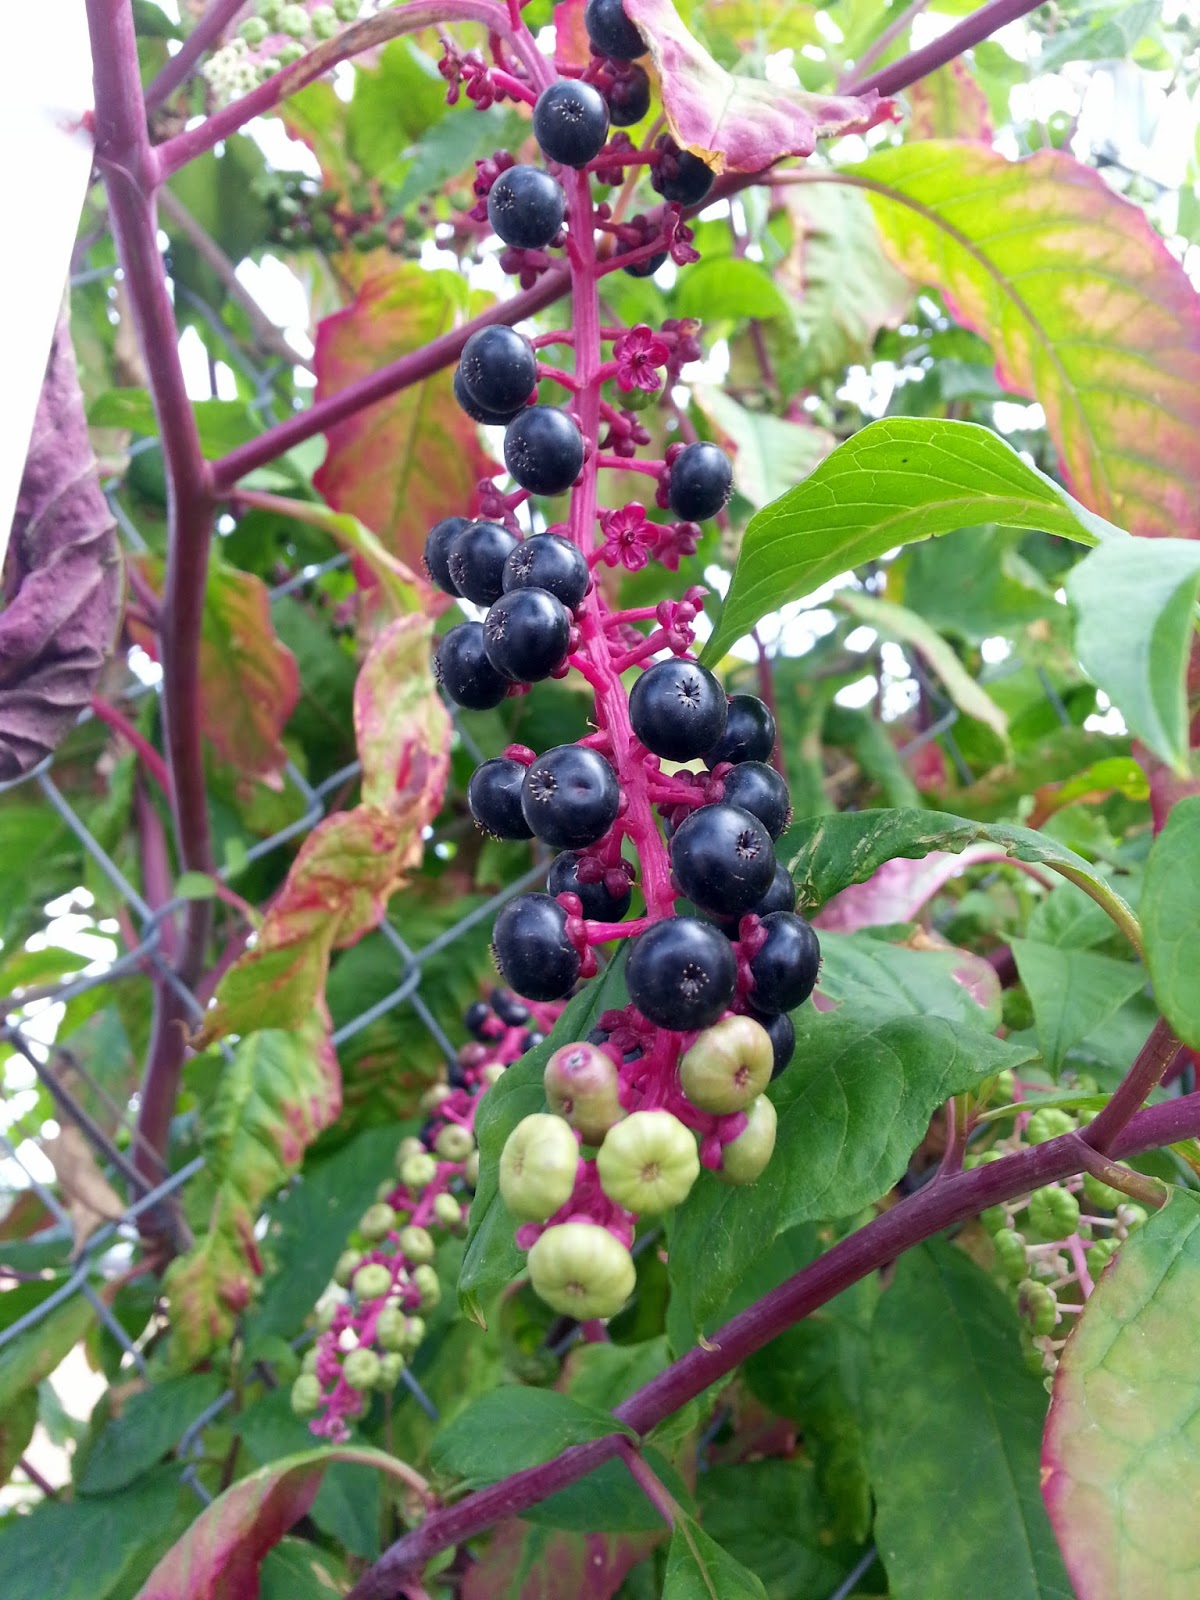 Ben's Journal: Name that Plant: Red Stems with Clusters of Berries ...